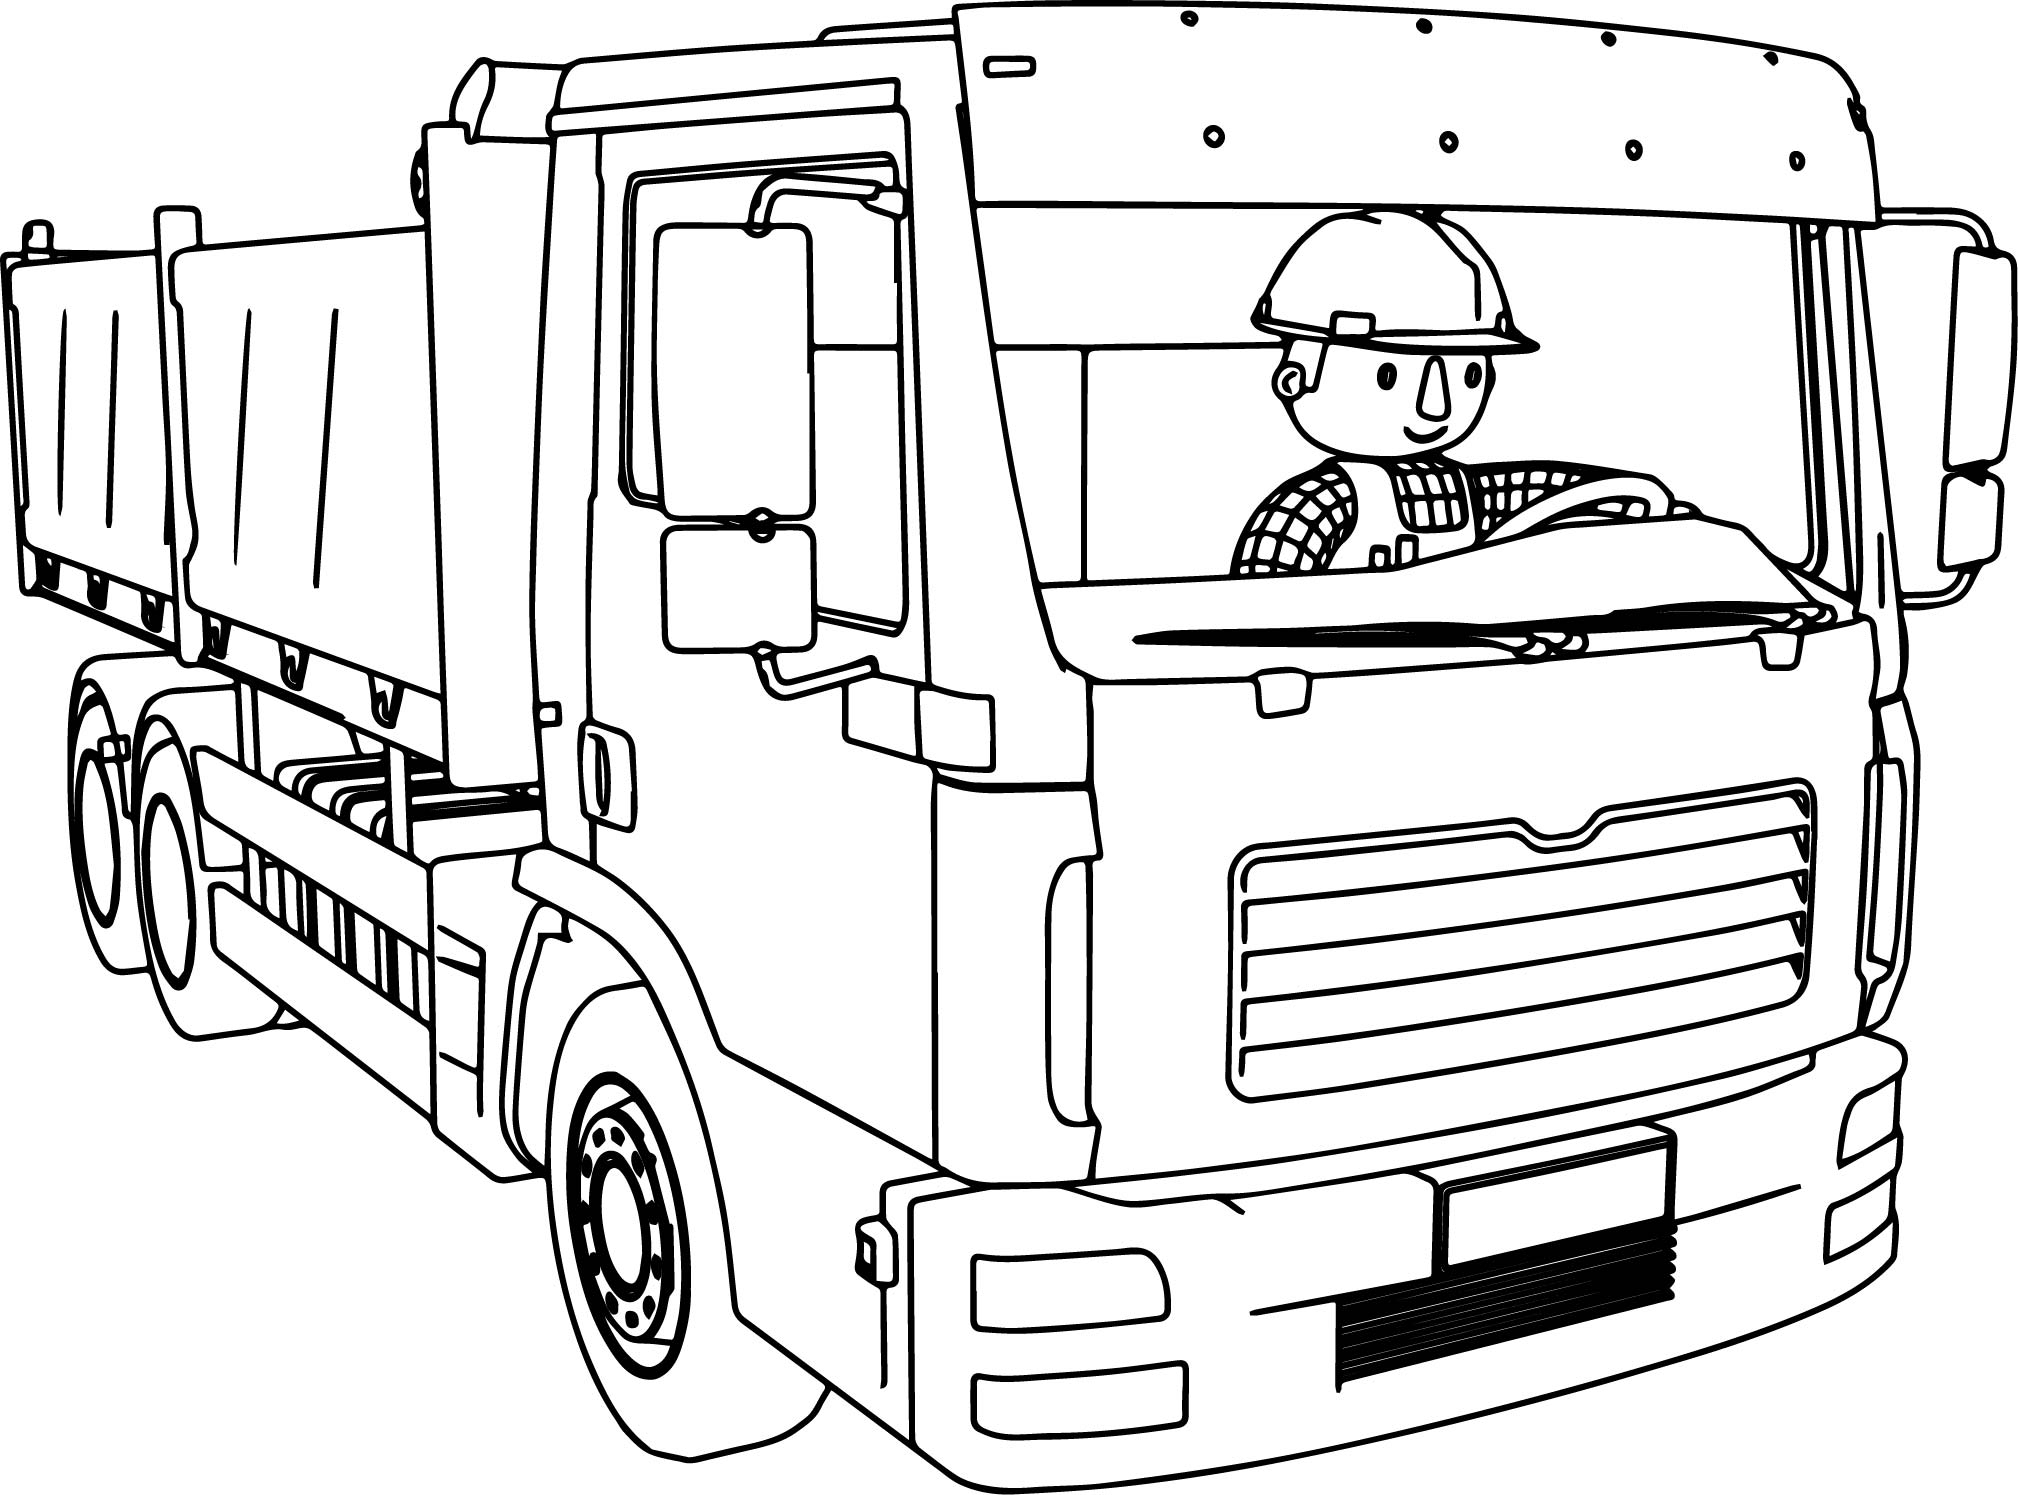 Truck coloring pages gallery free coloring sheets for Free coloring page maker